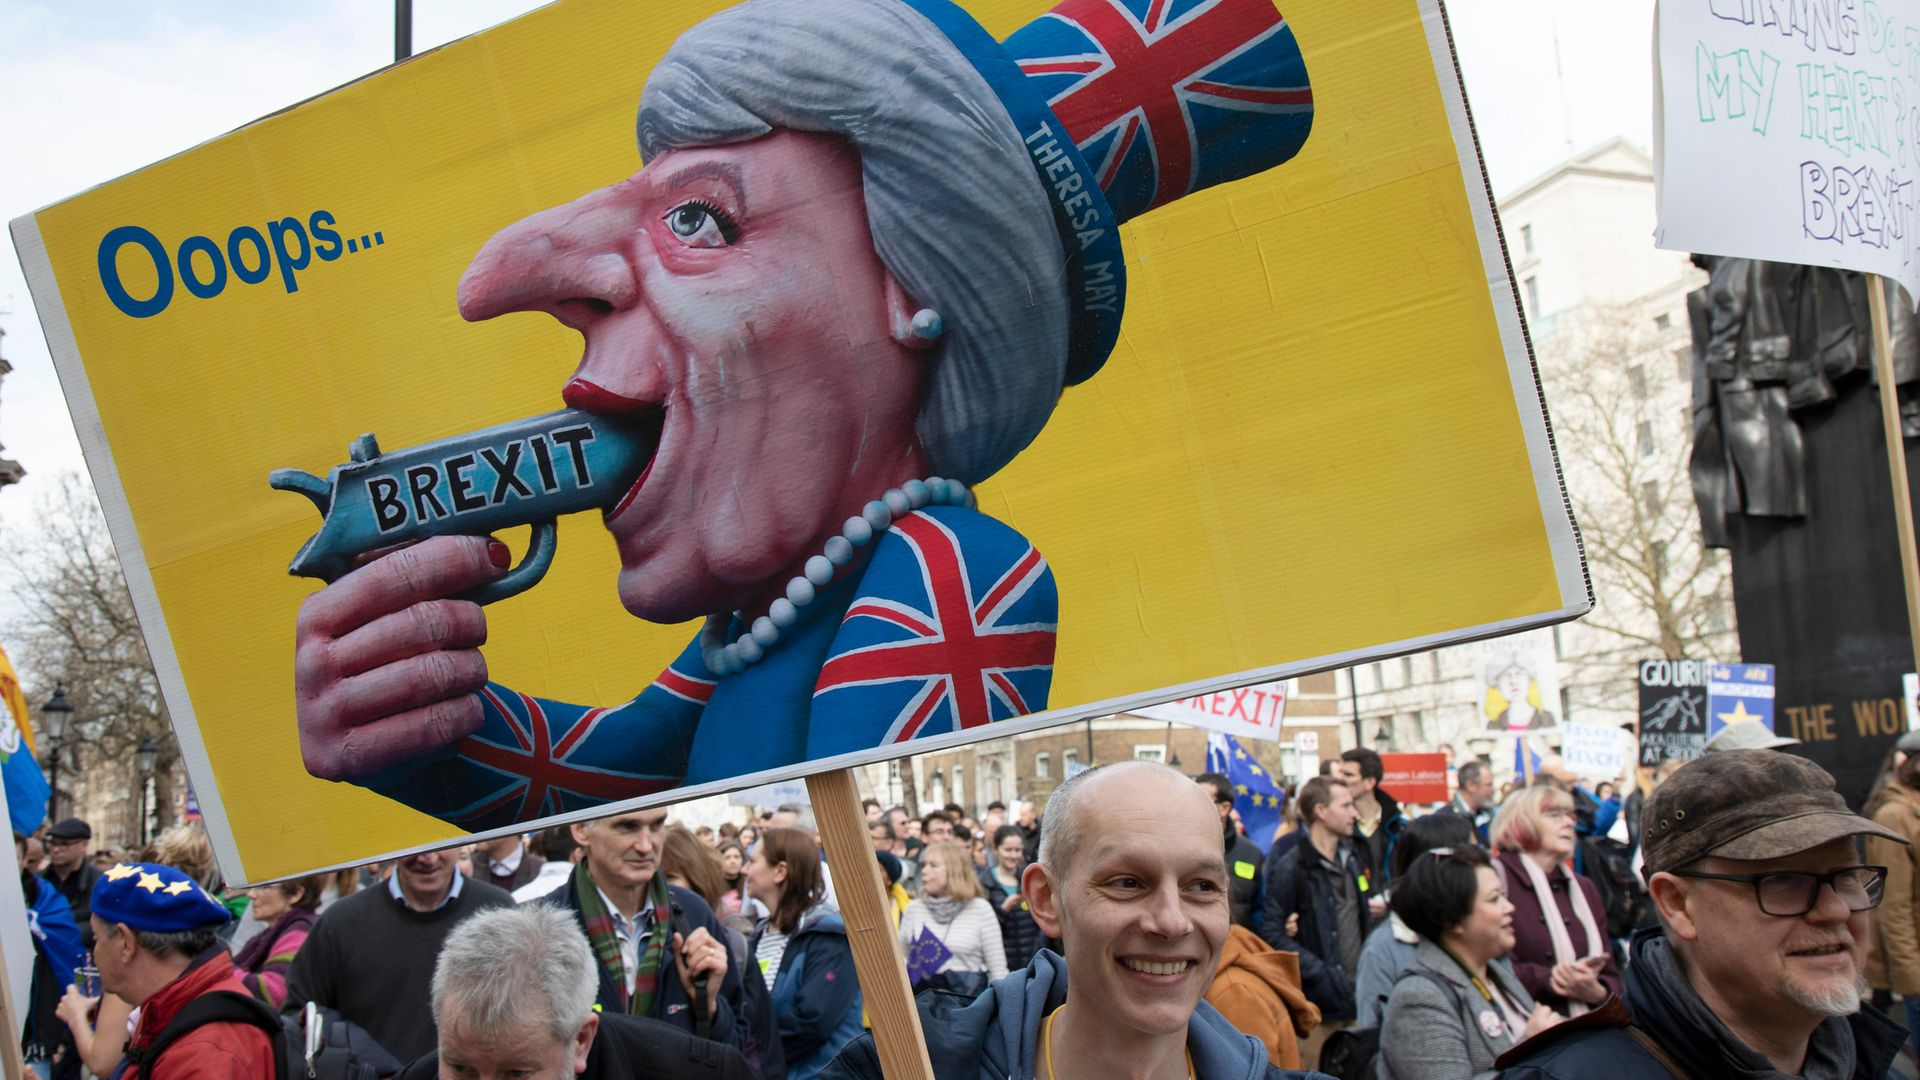 Triggered: a protestor at an anti-Brexit rally - Credit: In Pictures via Getty Images